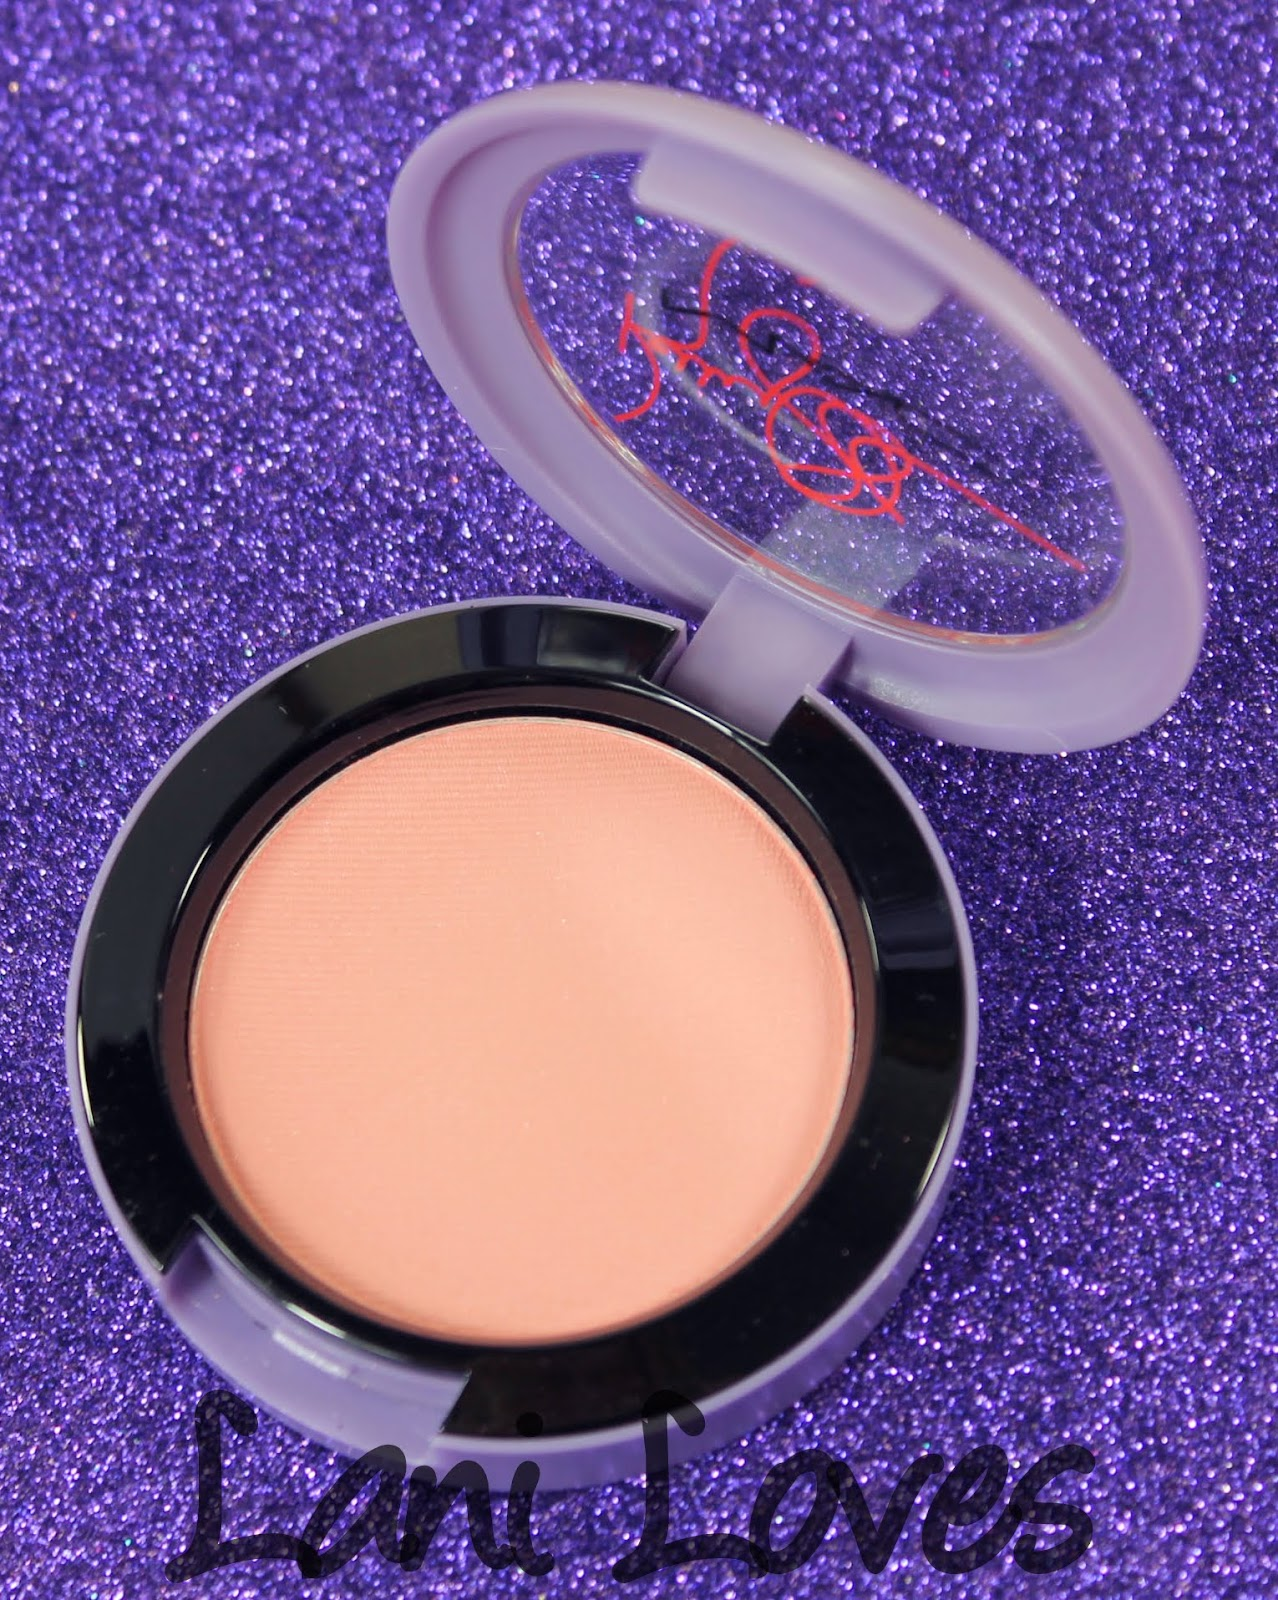 MAC Monday: MAC X Osbournes - Cheeky Bugger Swatches & Review